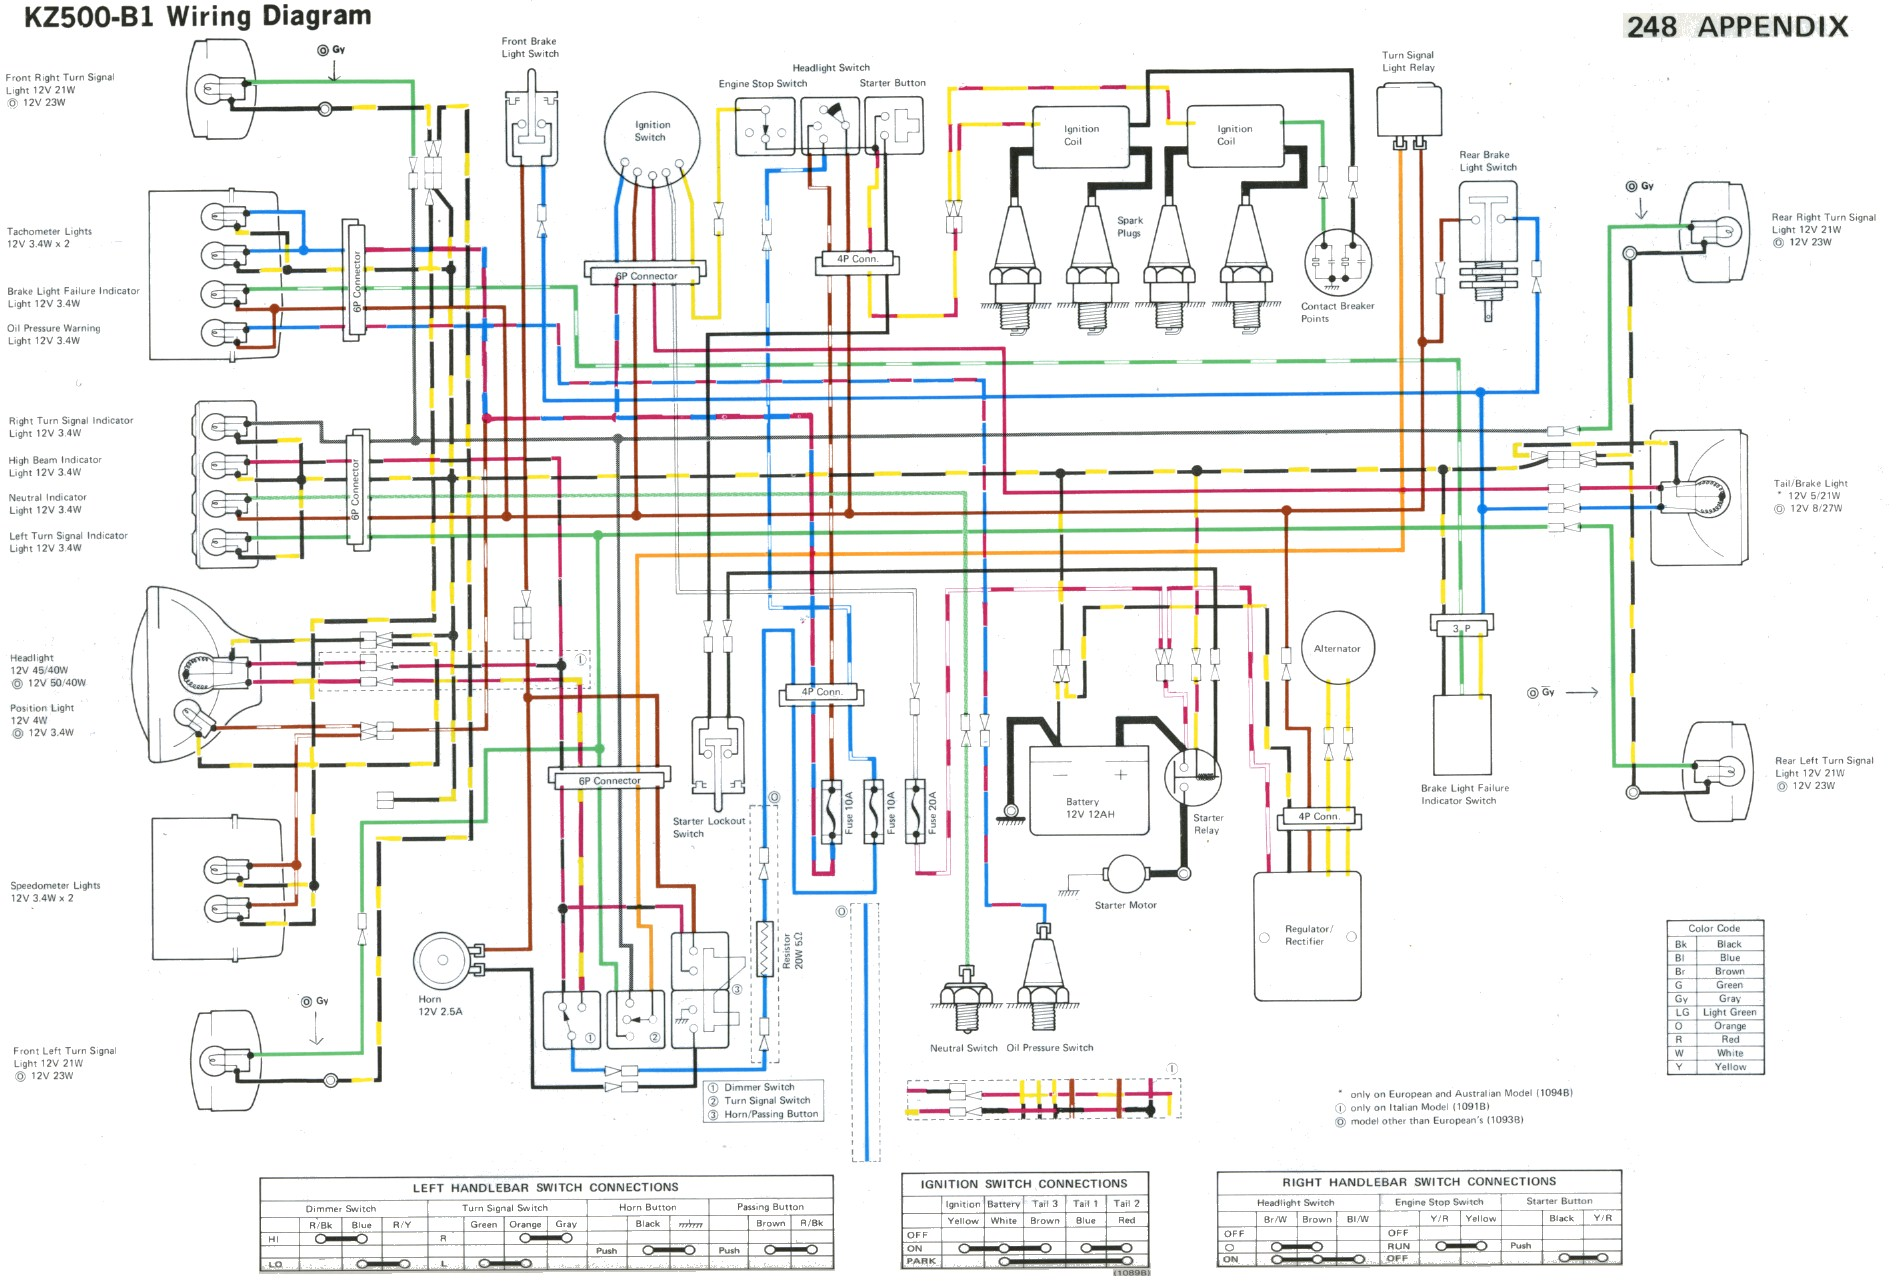 1977 kz1000 wiring diagram great installation of wiring diagram • 1977 kz1000 wiring diagram images gallery